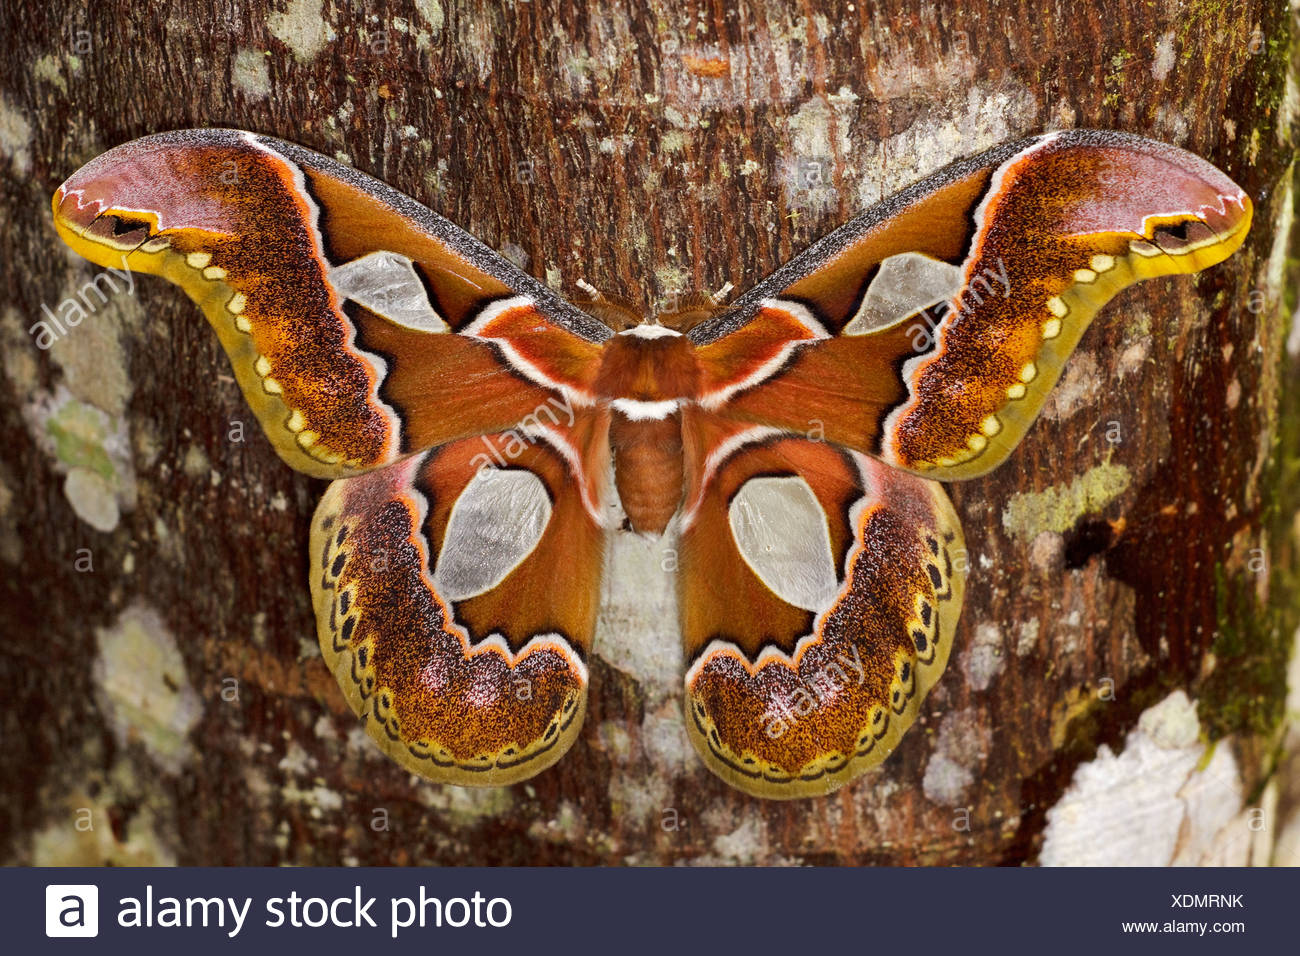 A large moth perched on a tree trunk in the Tandayapa Valley of Ecuador. Stock Photo